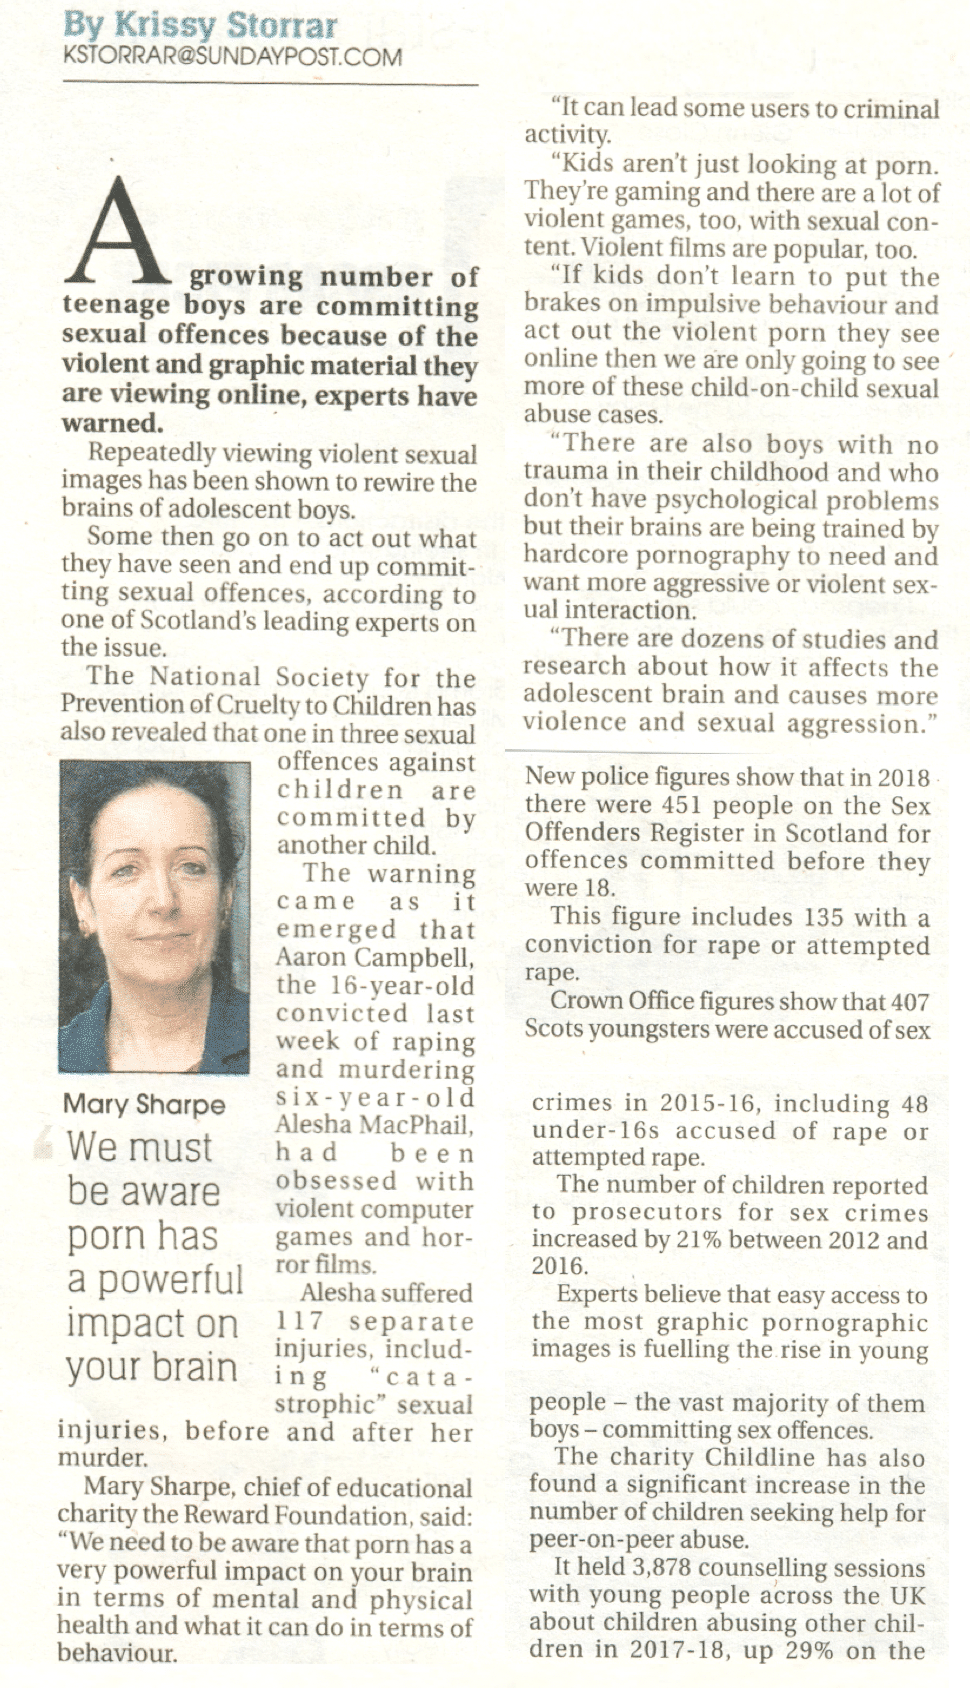 The Sunday Post 24 February 2019